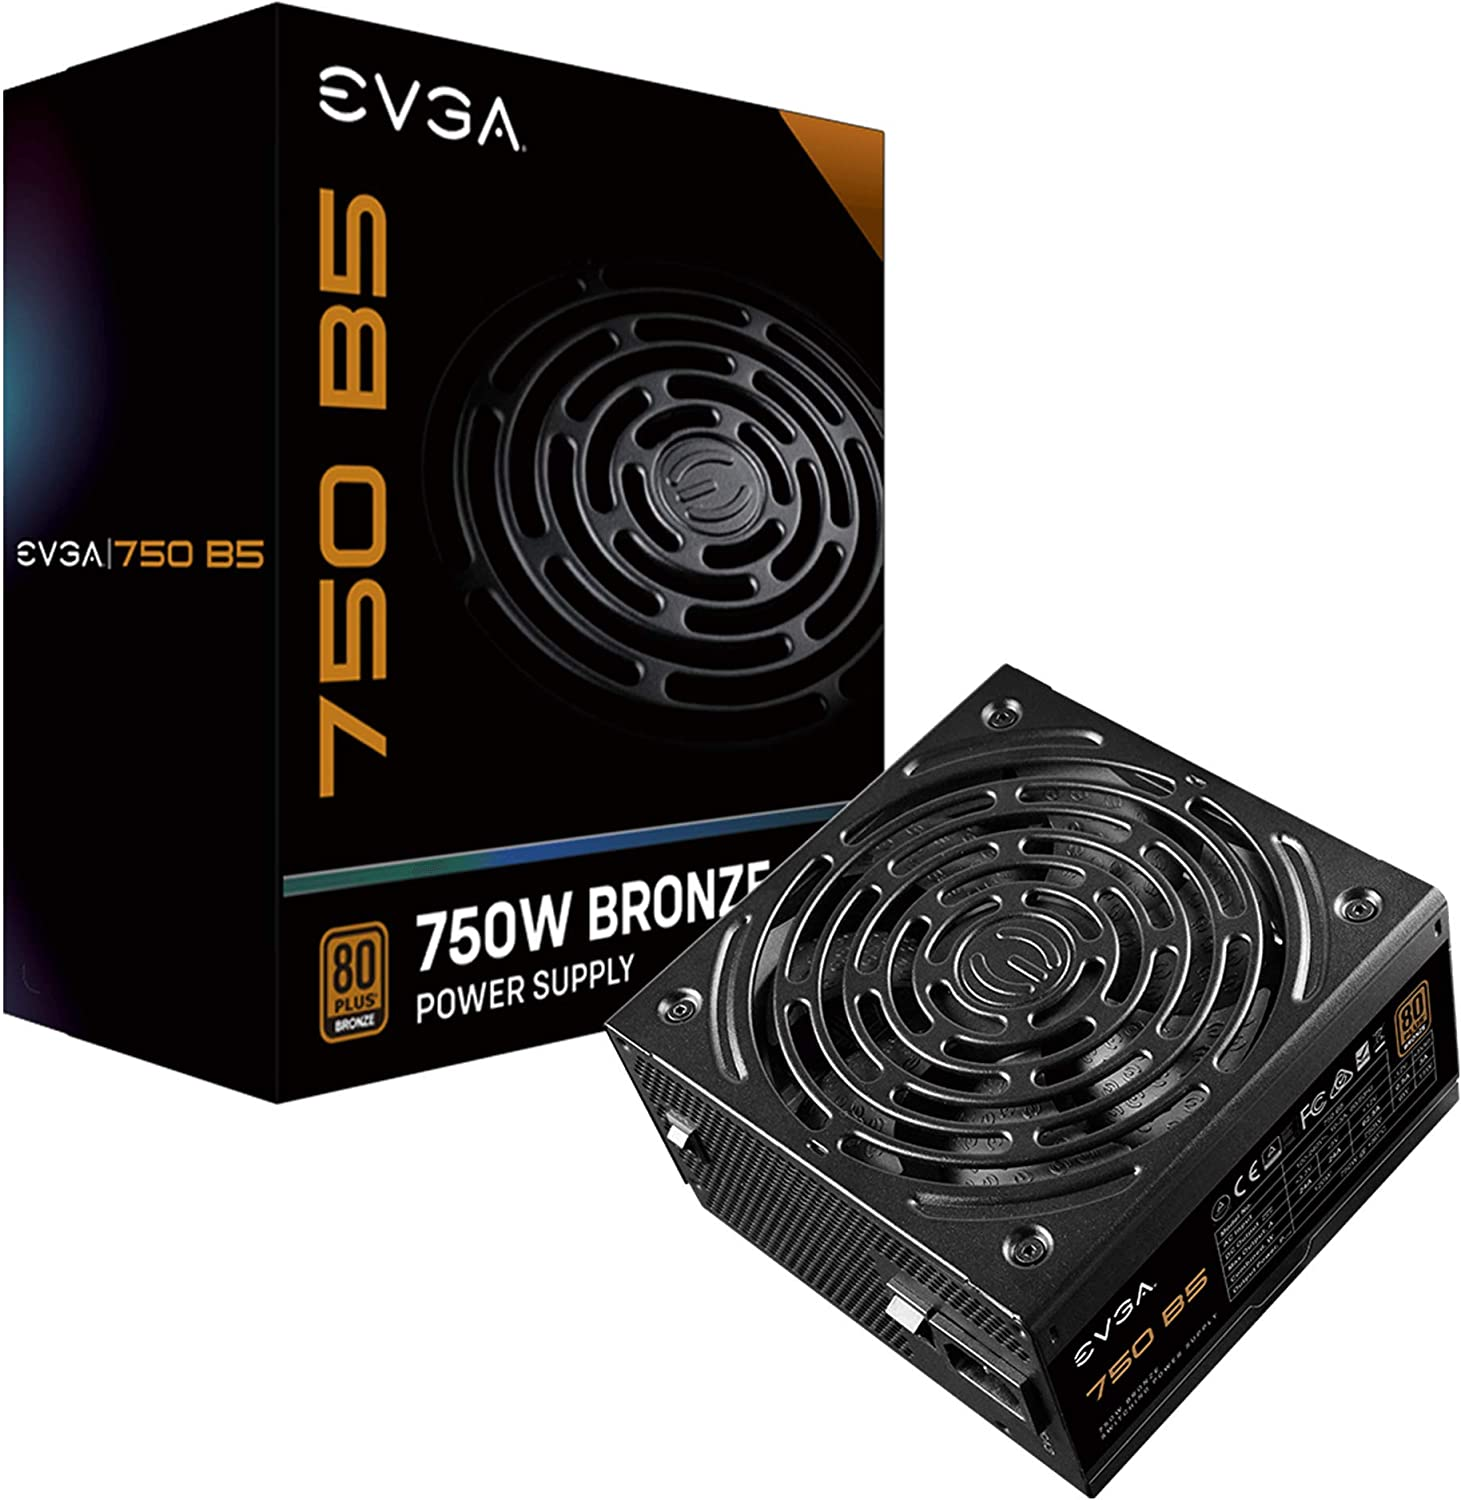 EVGA 750 B5, 80 Plus Bronze 750W, Fully Modular, EVGA ECO Mode, 5 Year Warranty, Compact 150mm Size, Power Supply 220-B5-0750-V1